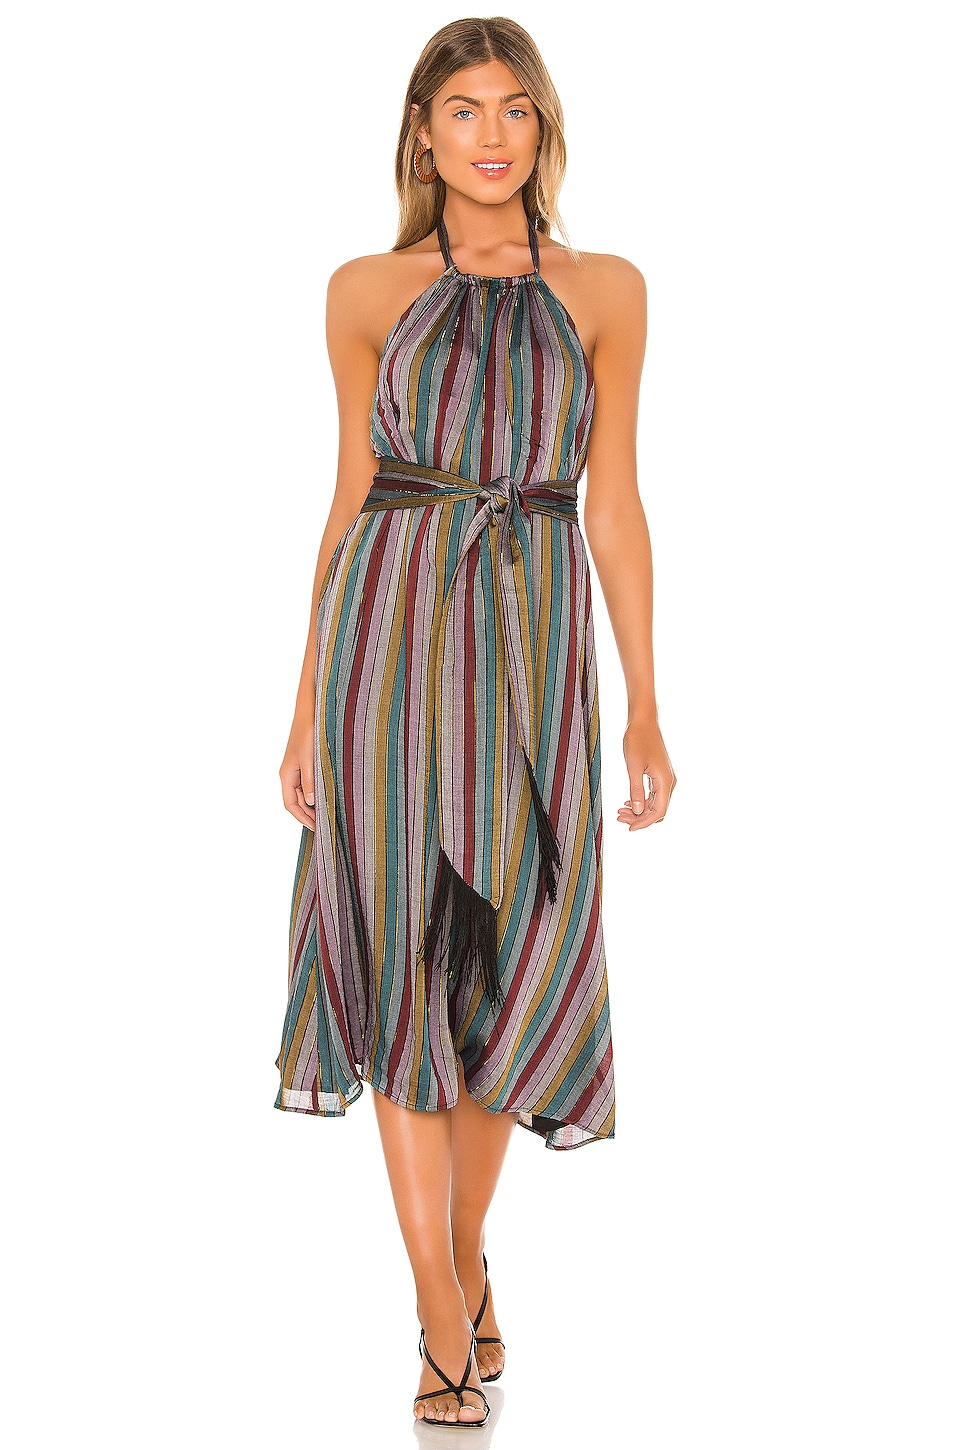 House Of Harlow 1960 X Revolve Cecily Midi Dress In Black Multi Stripe Revolve Shop for midi dresses in india buy latest range of midi dresses at myntra free shipping cod easy returns and exchanges. house of harlow